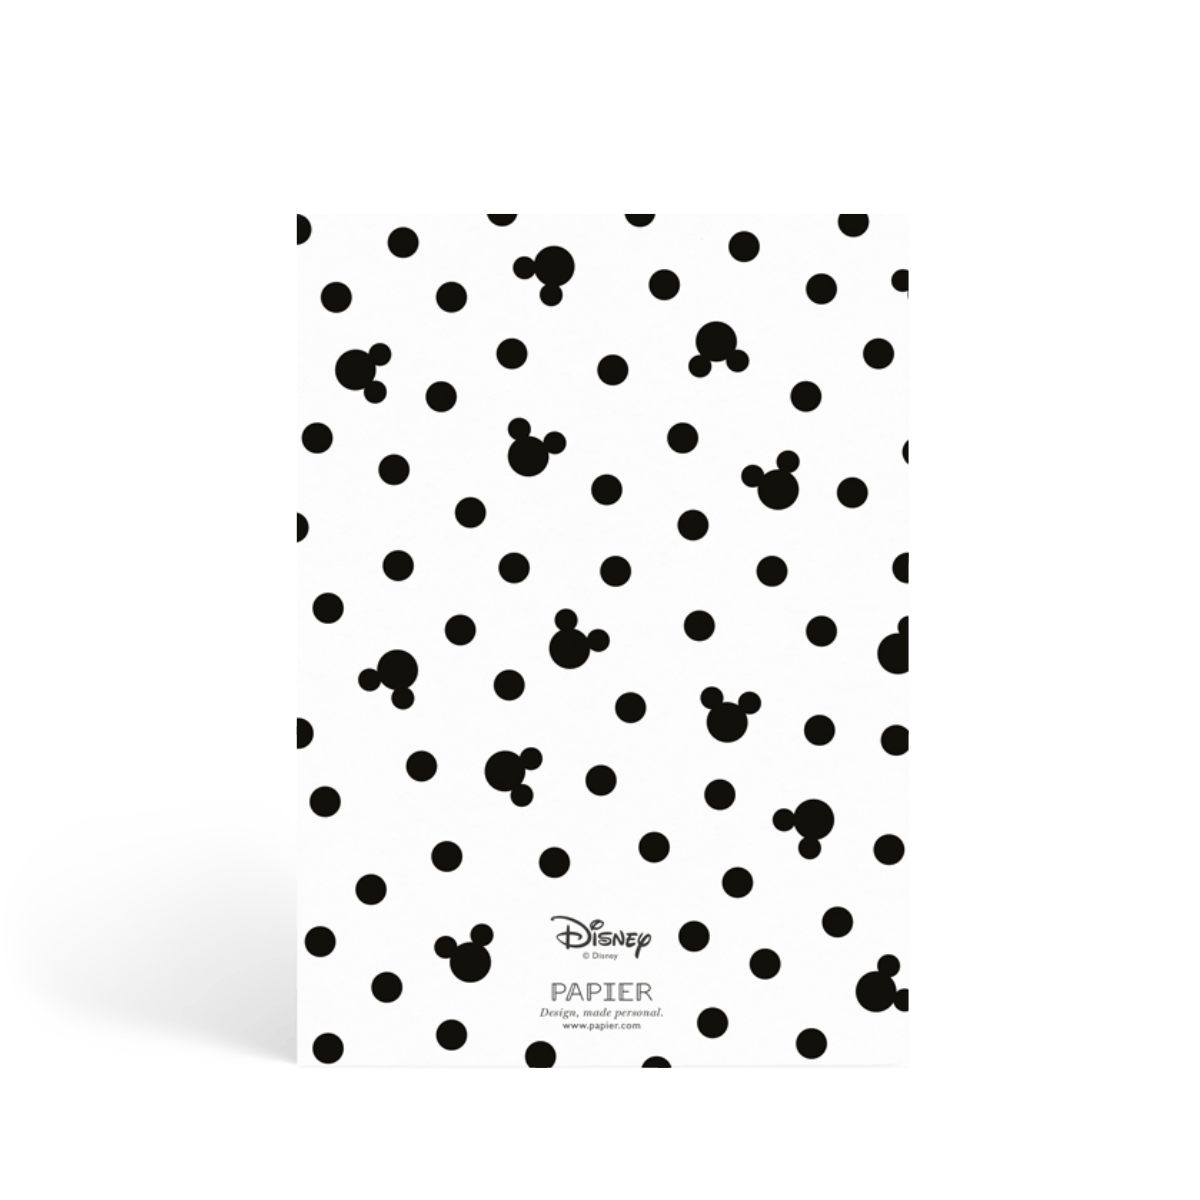 Https%3a%2f%2fwww.papier.com%2fproduct image%2f51341%2f5%2fpolka dot mickey mouse 12573 arriere 1540477874.png?ixlib=rb 1.1